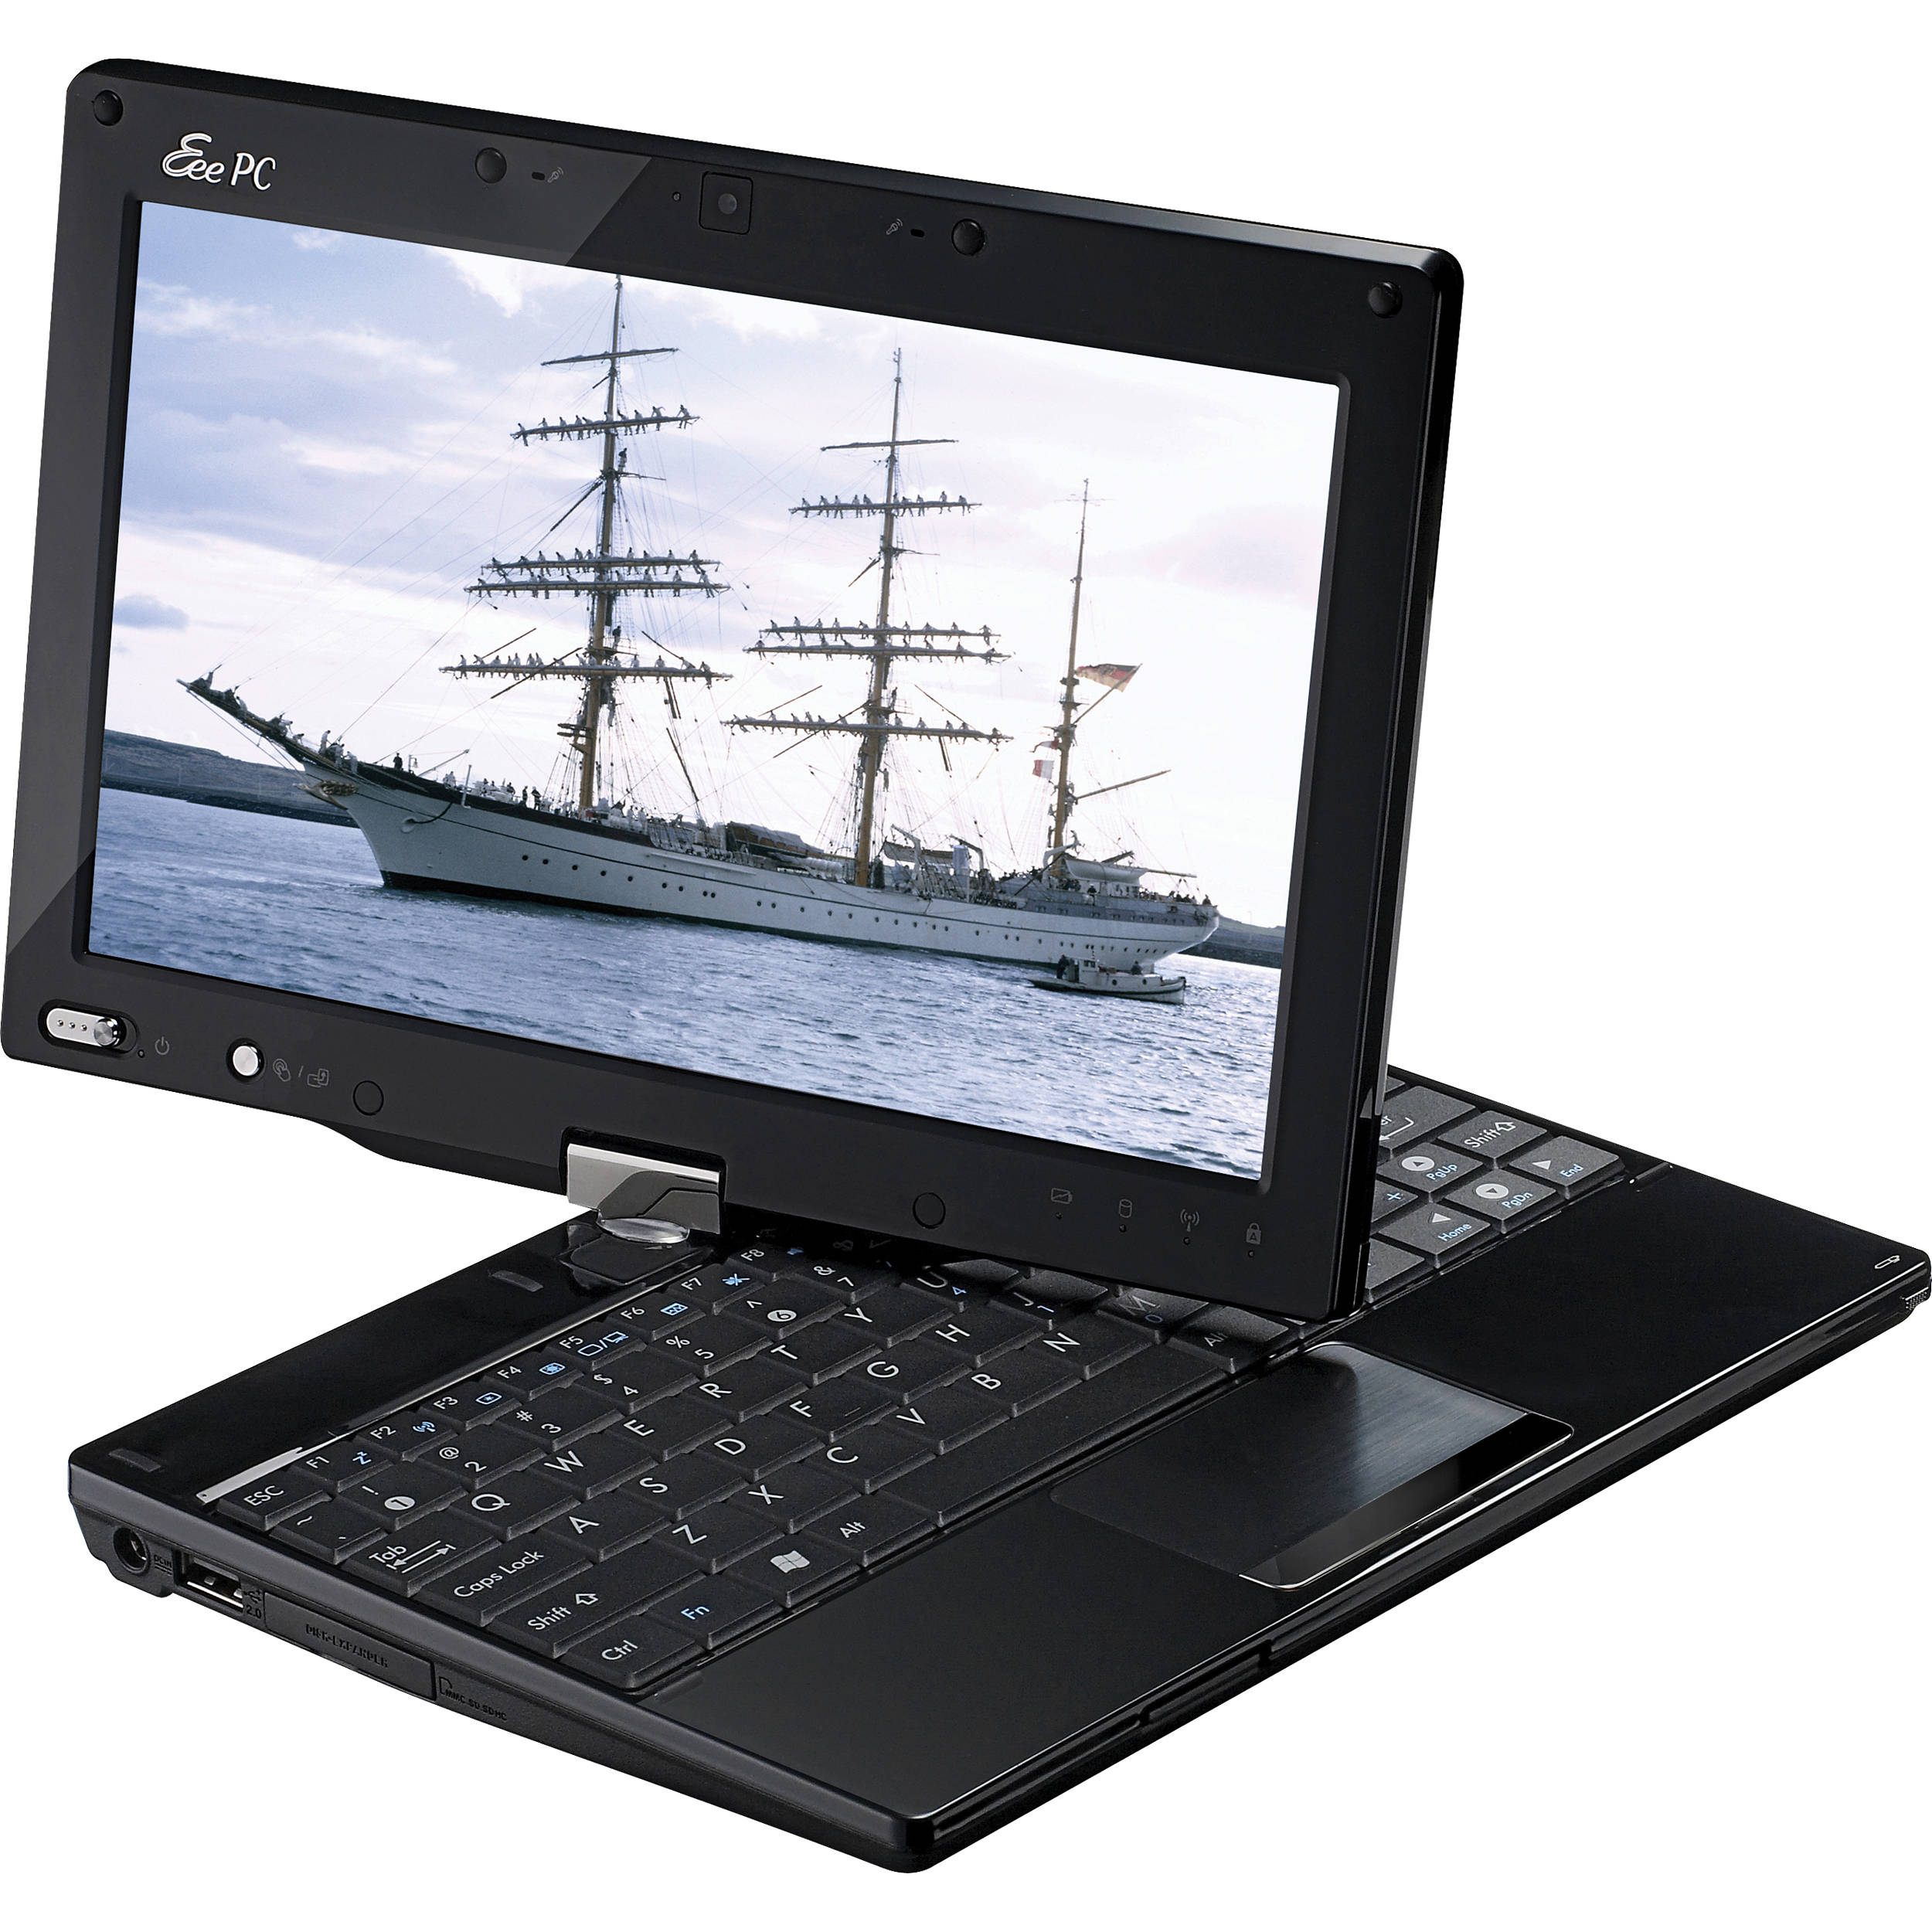 ASUS EEE PC T91 NETBOOK AUDIO DRIVERS FOR WINDOWS 8